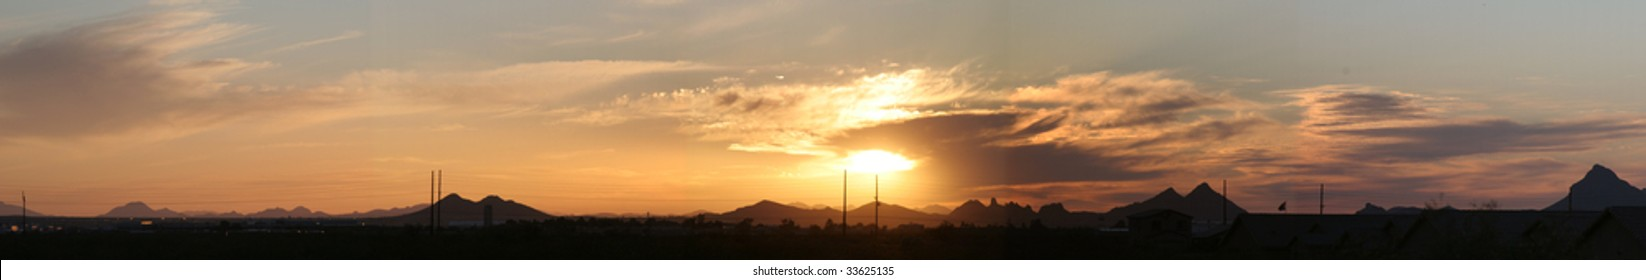 Panoramic of an Arizona sunset with power lines visible in the distance